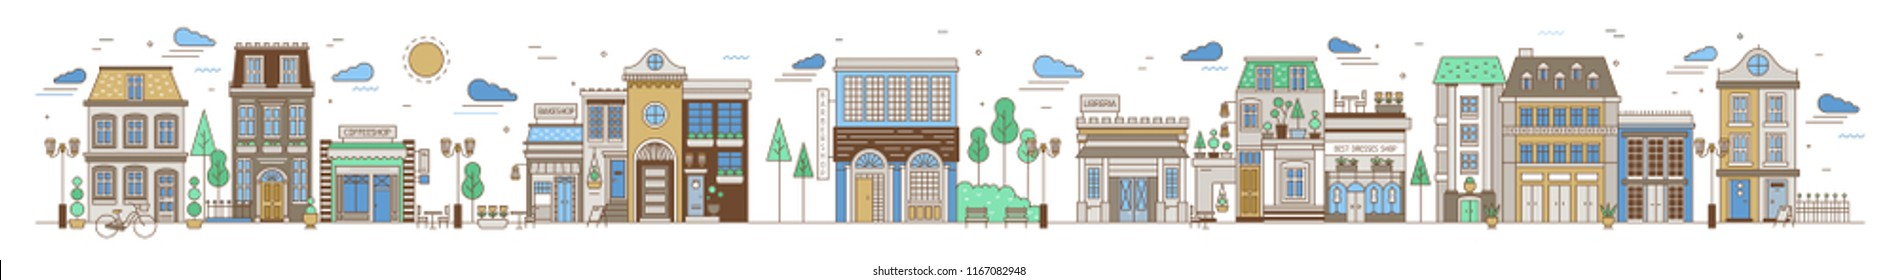 Horizontal urban landscape with city or town street or neighborhood. Cityscape with residential houses, stores and coffeeshops on white background. Colorful vector illustration in line art style.